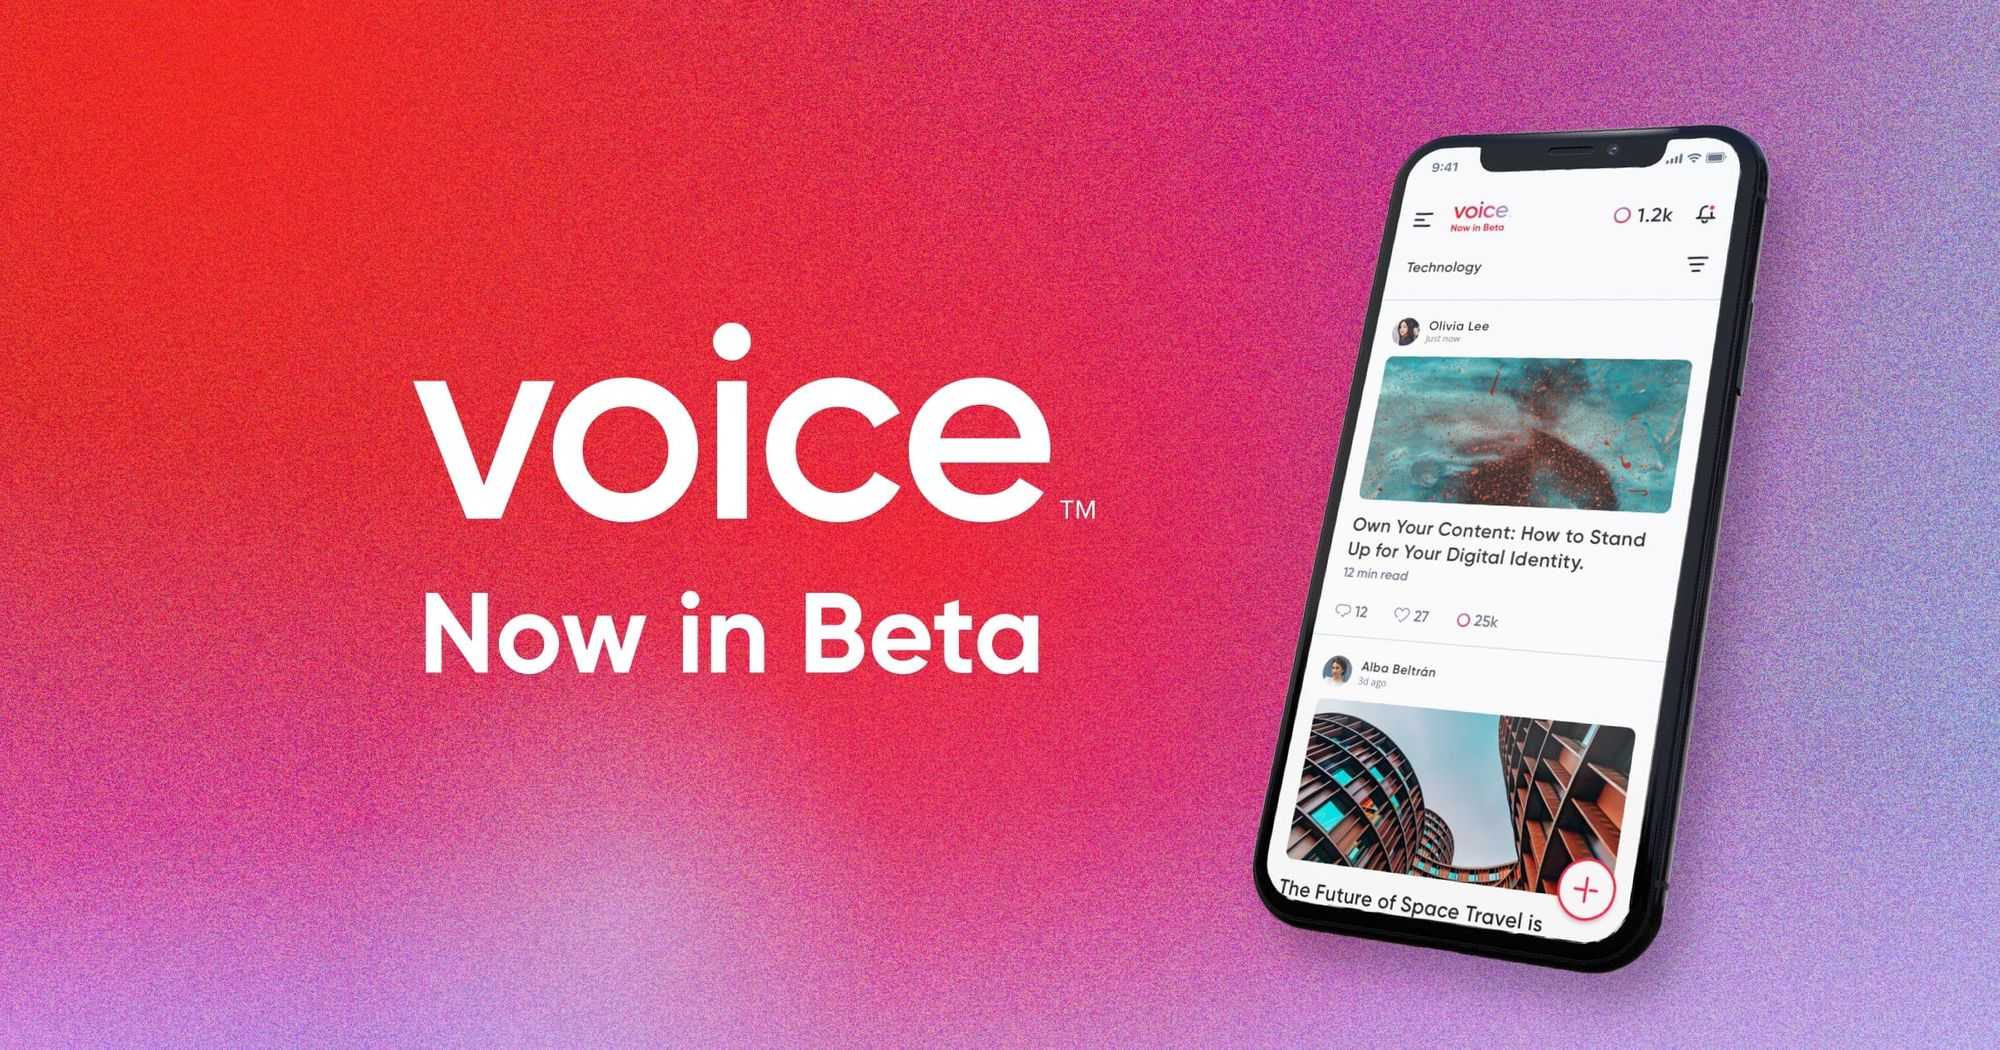 Voice to Receive US$150 Million of Capital from Block.one